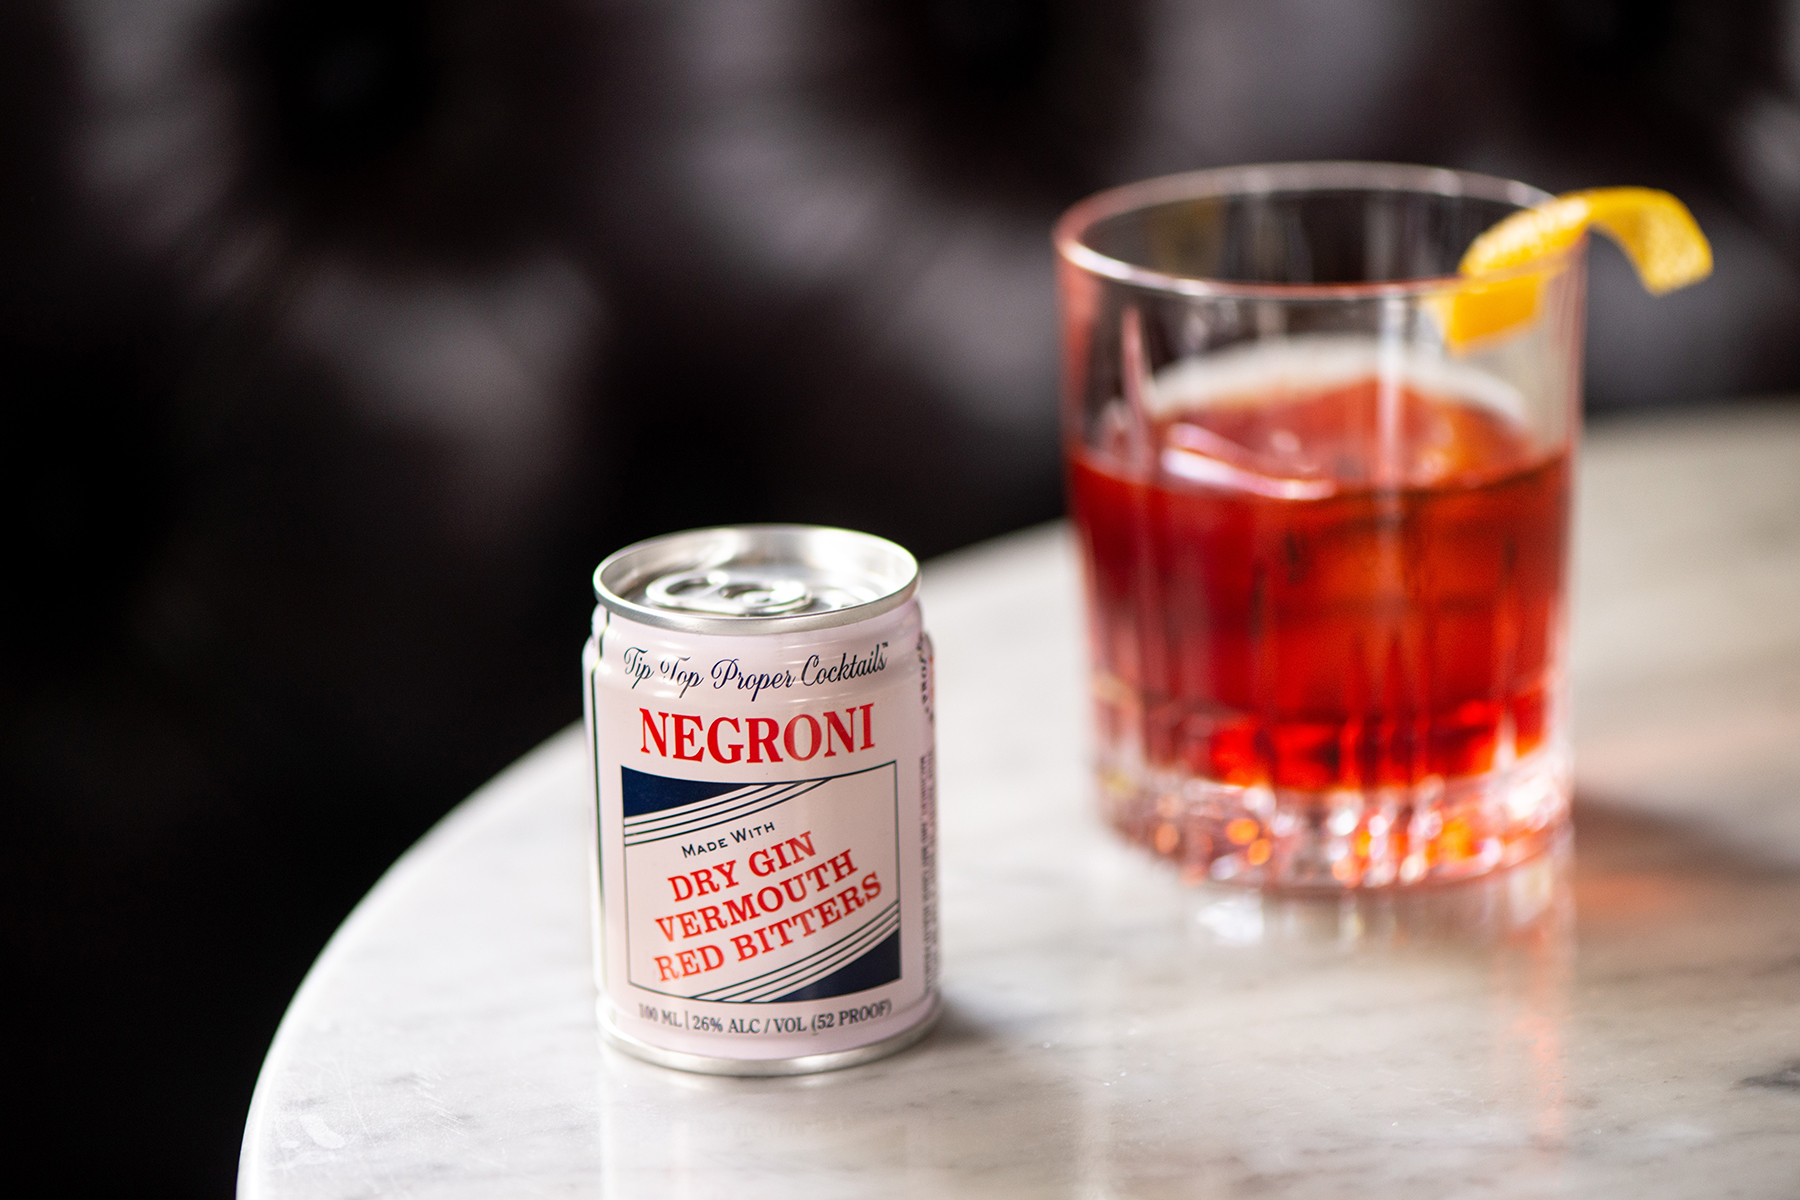 A Tip Top Negroni